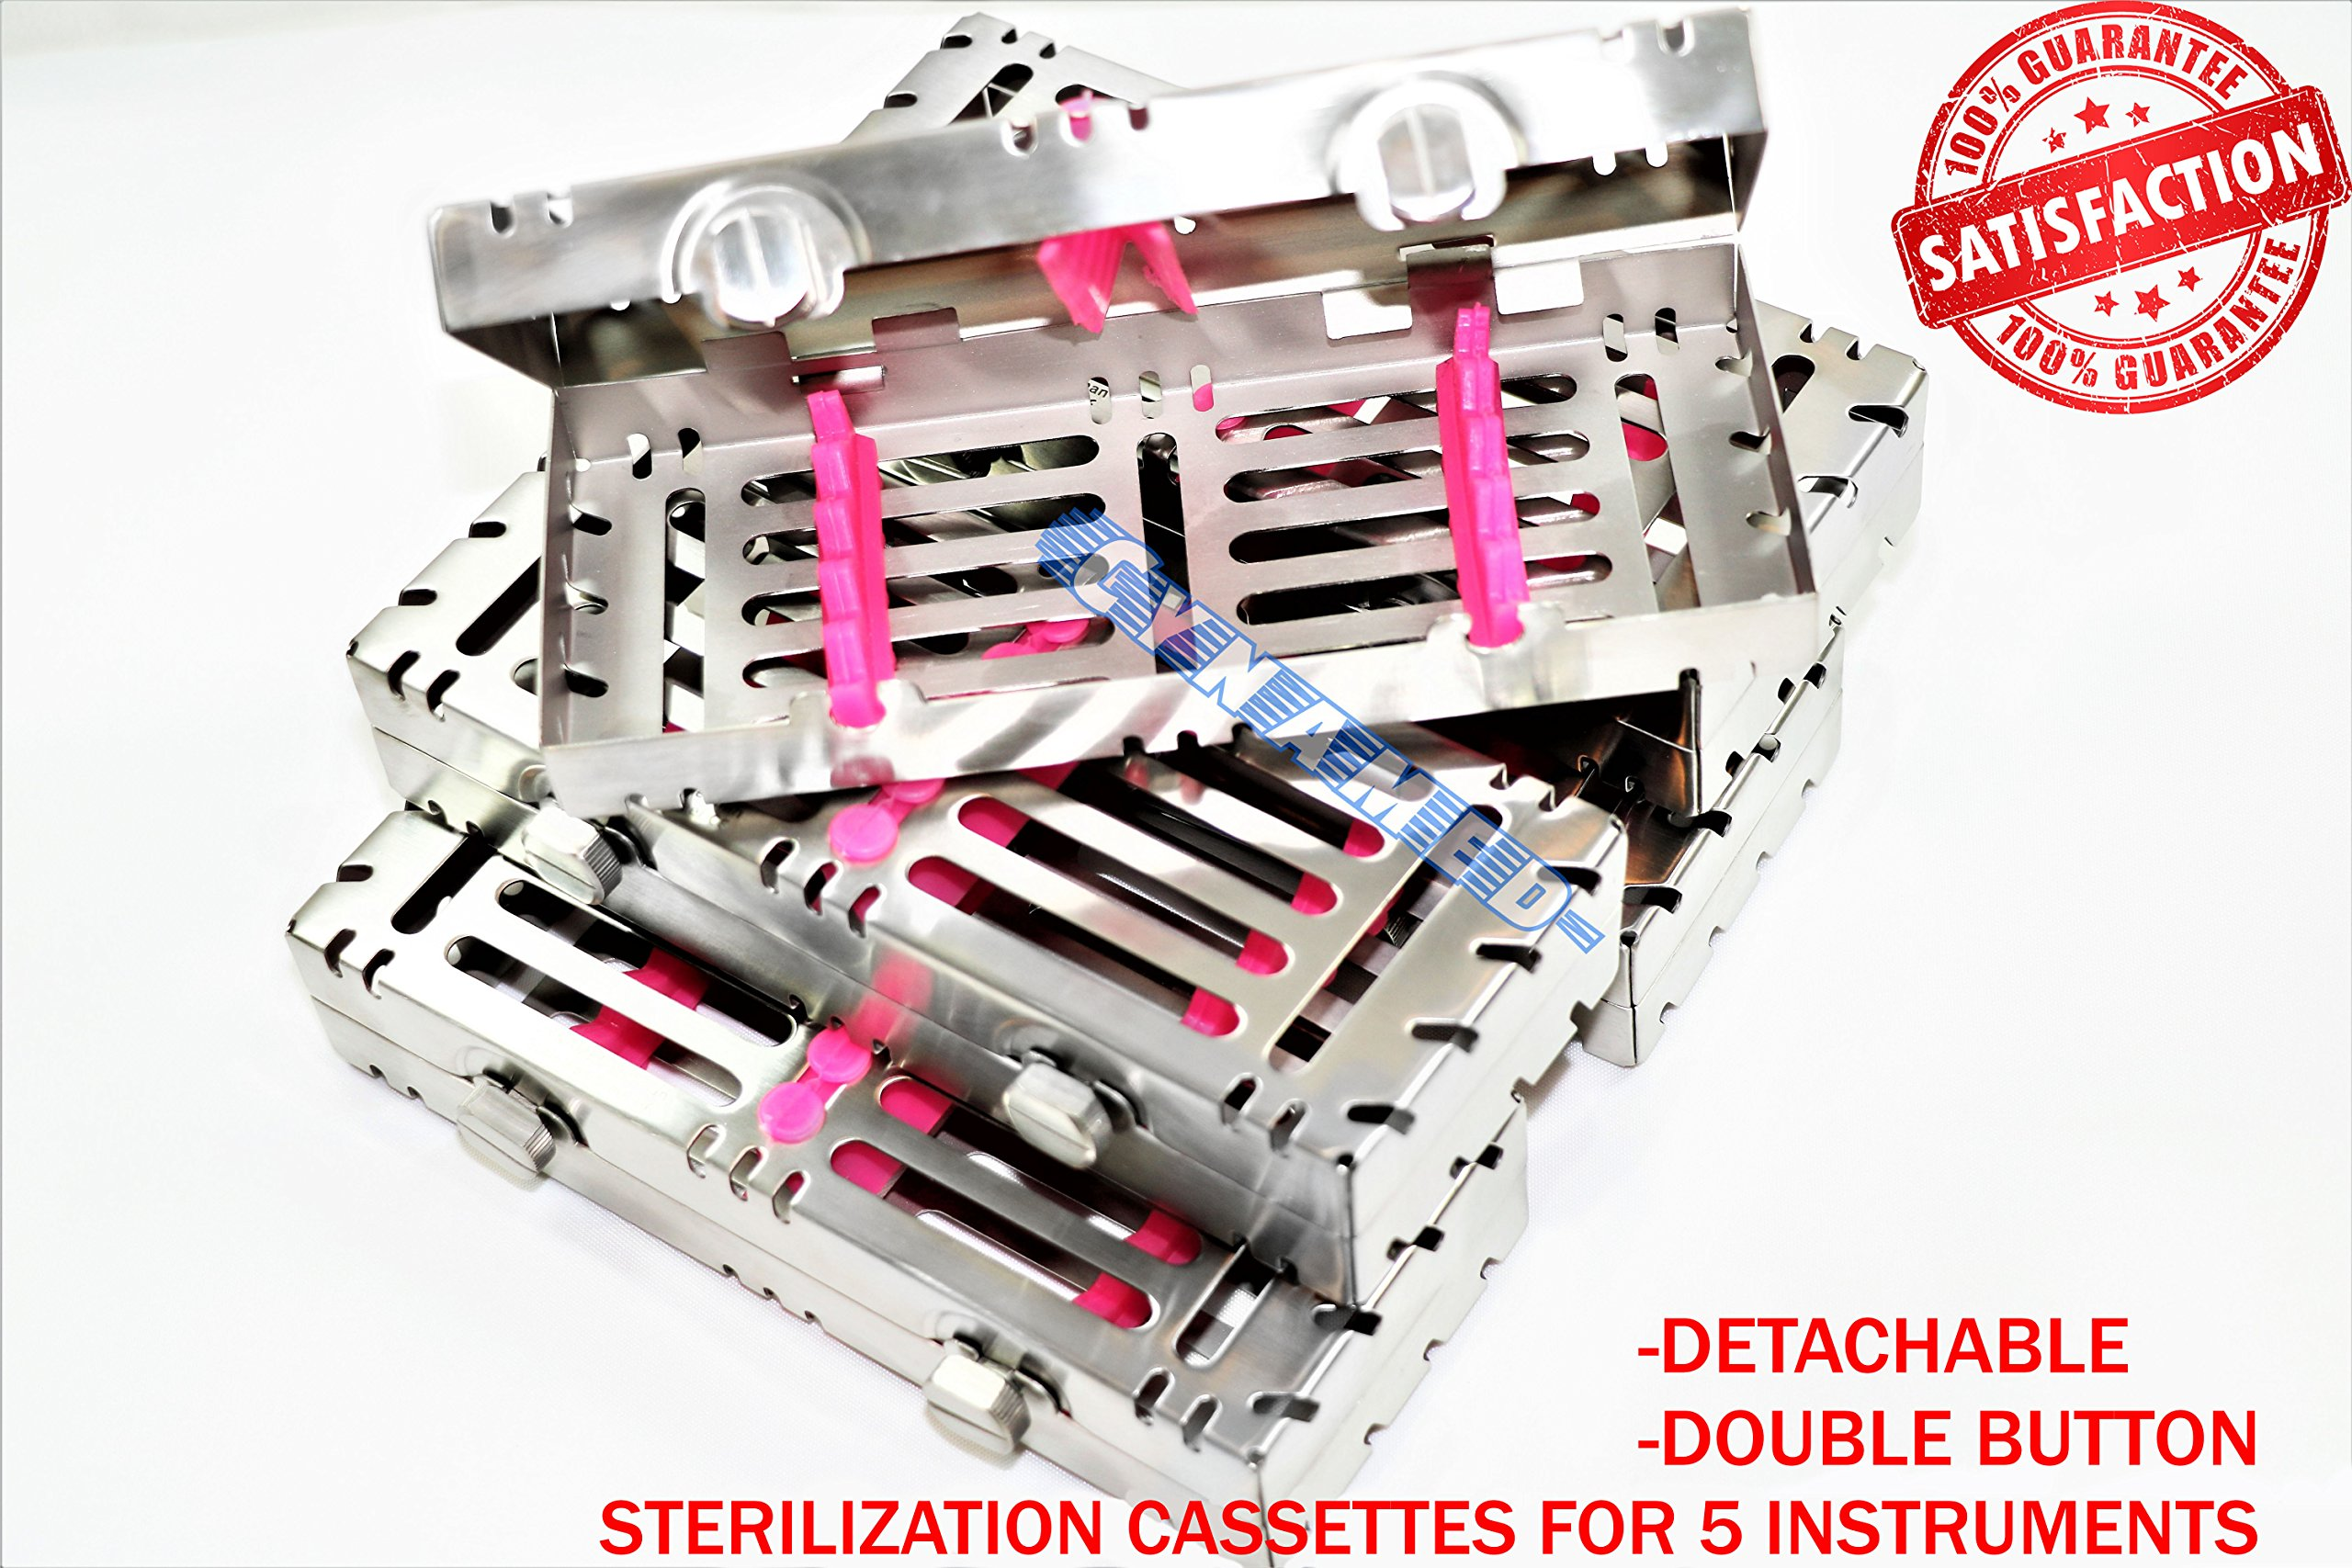 5 Slot German Sterilization Cassette for 5 Instruments Detachable with Double Button [CYNAMED]